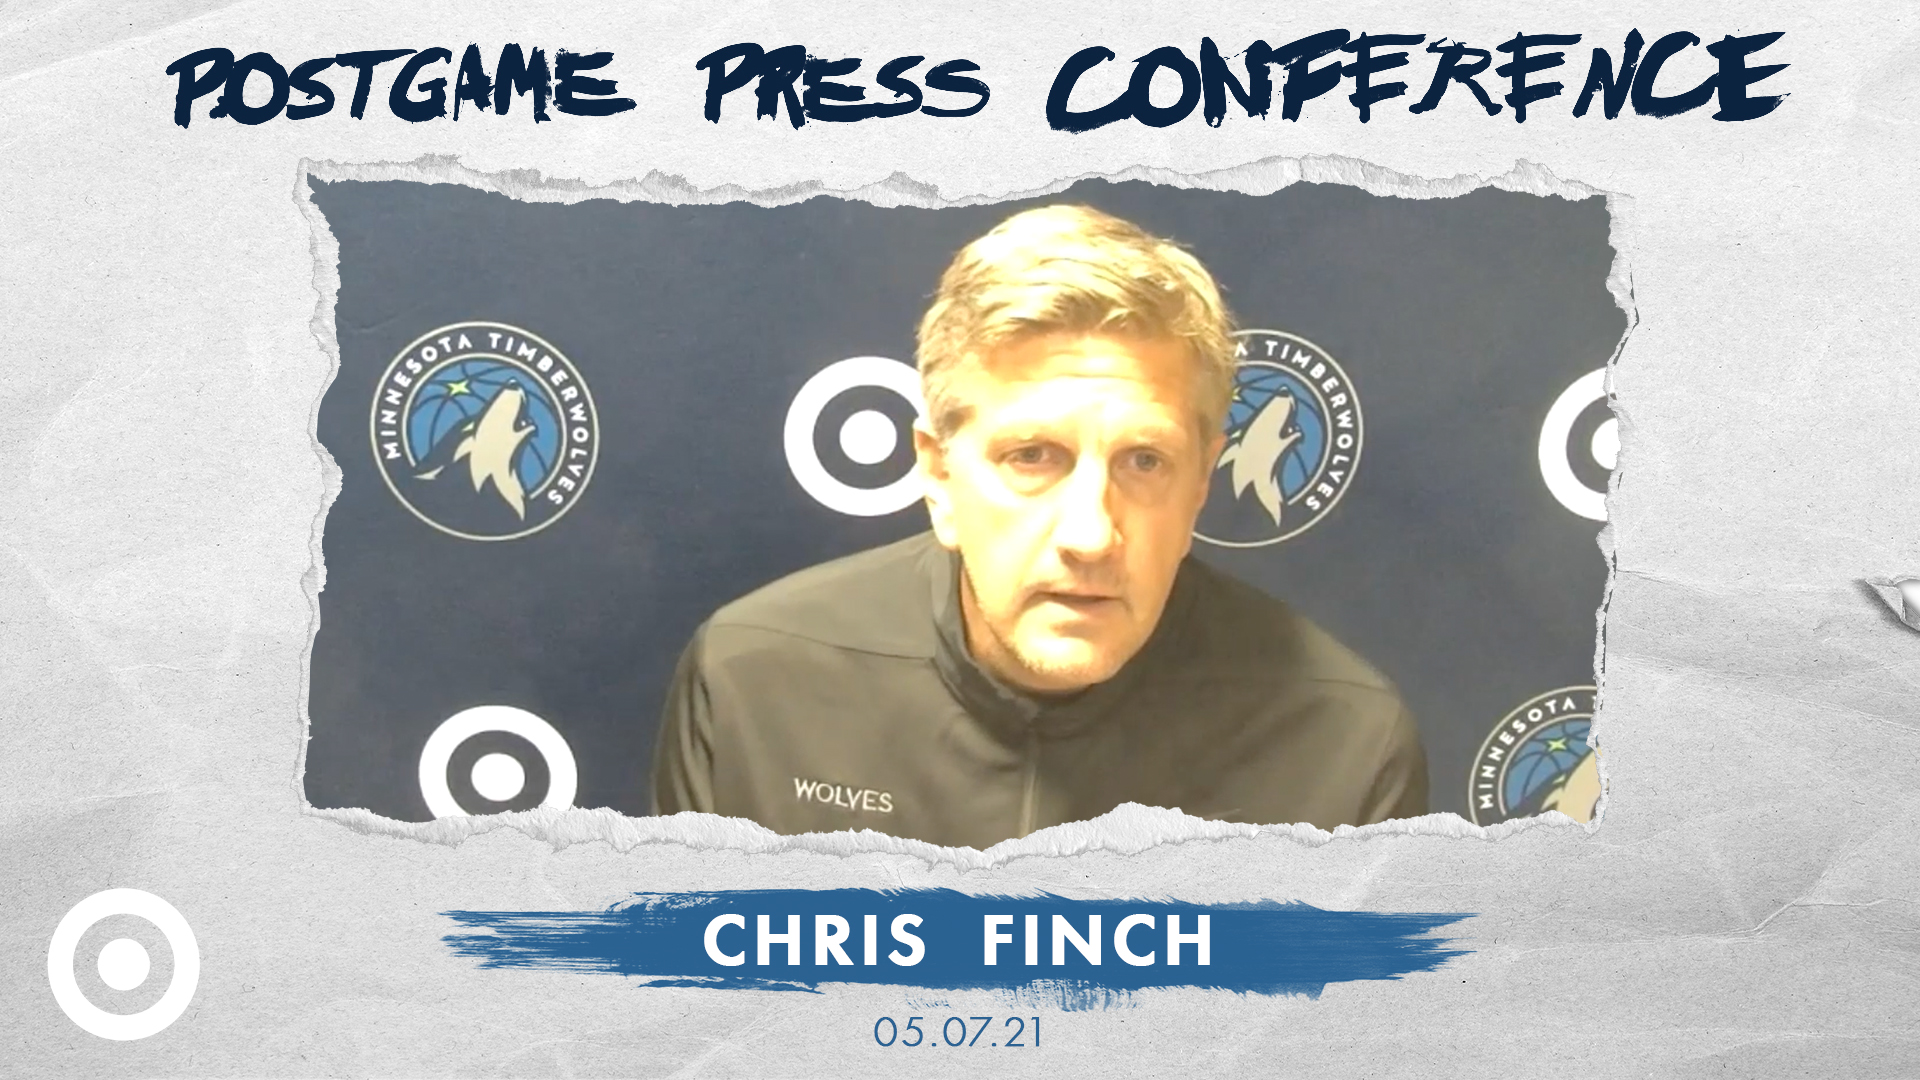 Chris Finch Postgame Press Conference - May 7, 2021